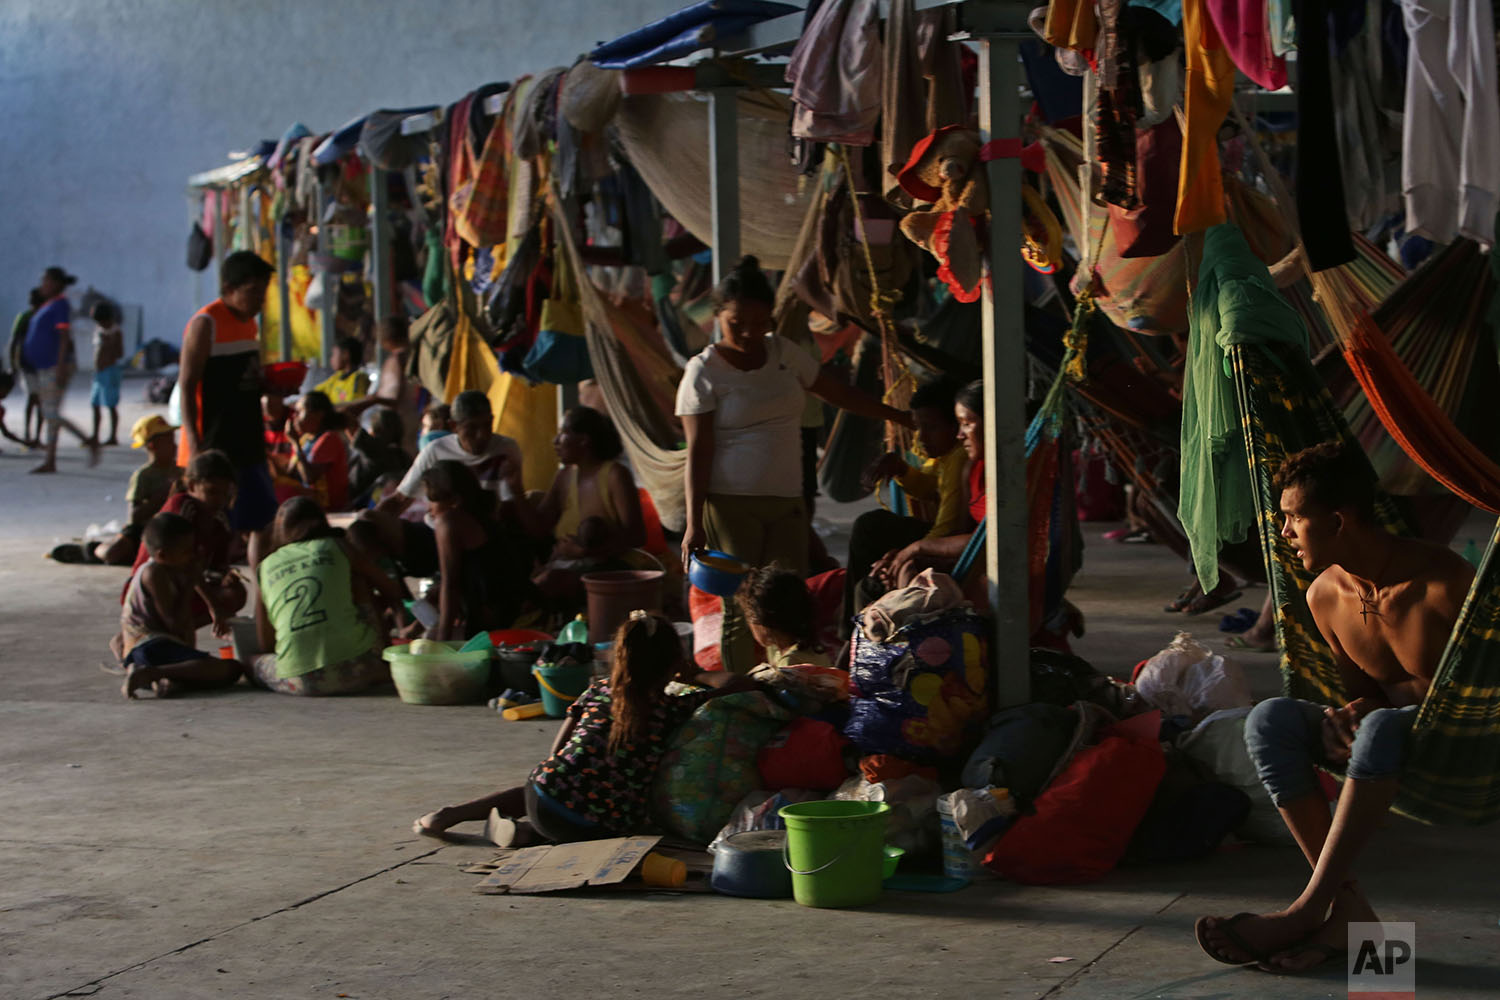 In this March 10, 2018 photo, a Warao refugee looks out from his hammock next to families sitting on the floor at a shelter, in Pacaraima, Brazil. (AP Photo/Eraldo Peres)